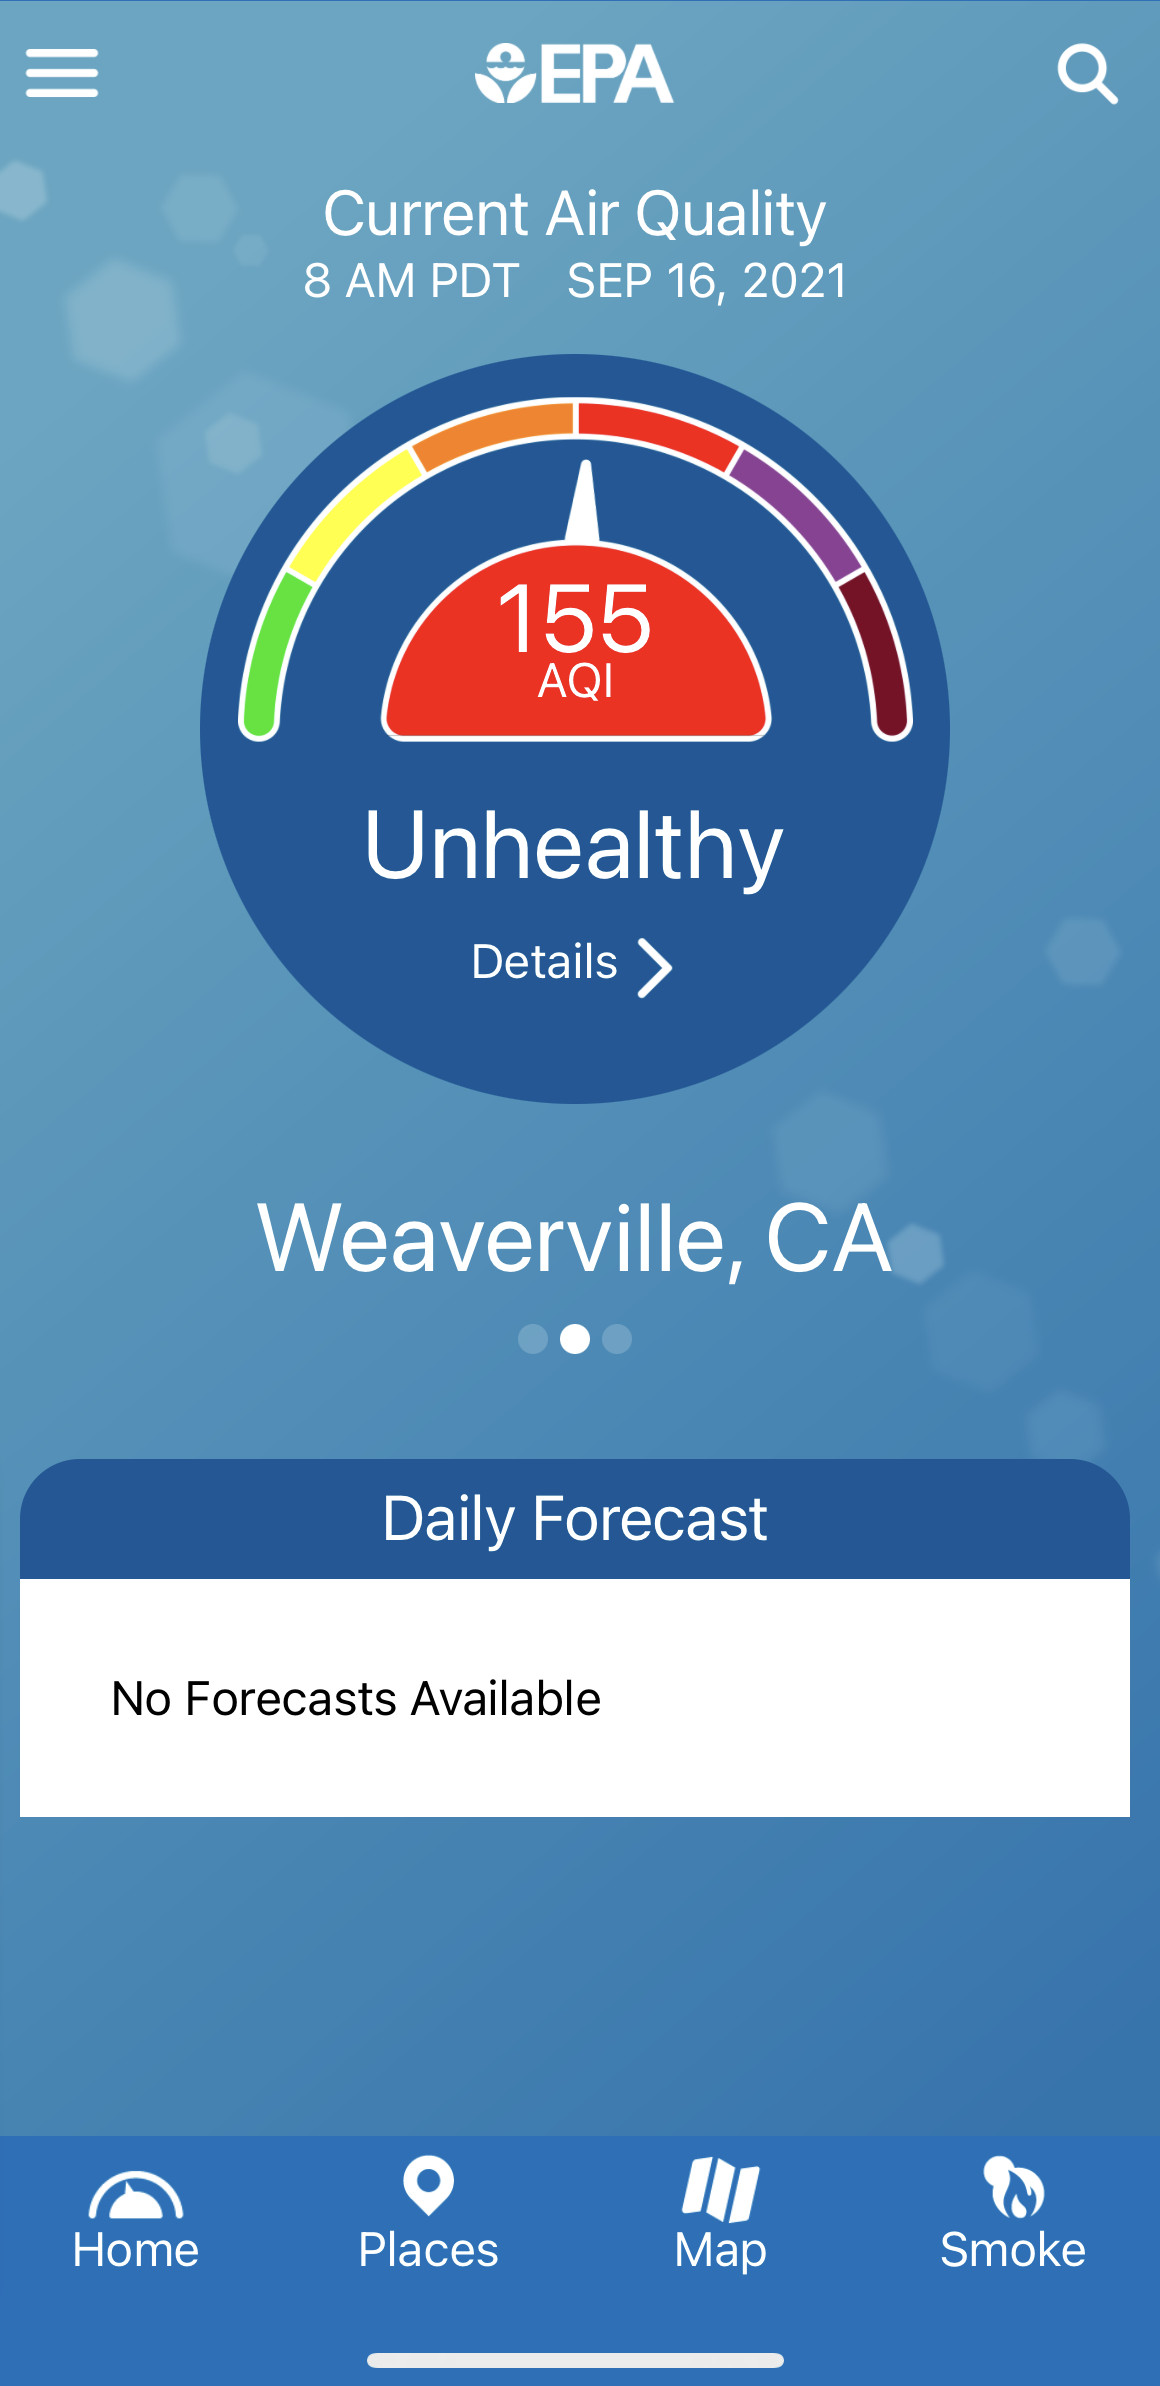 A screenshot of the air quality index meter reading 155, indicating unhealthy air.